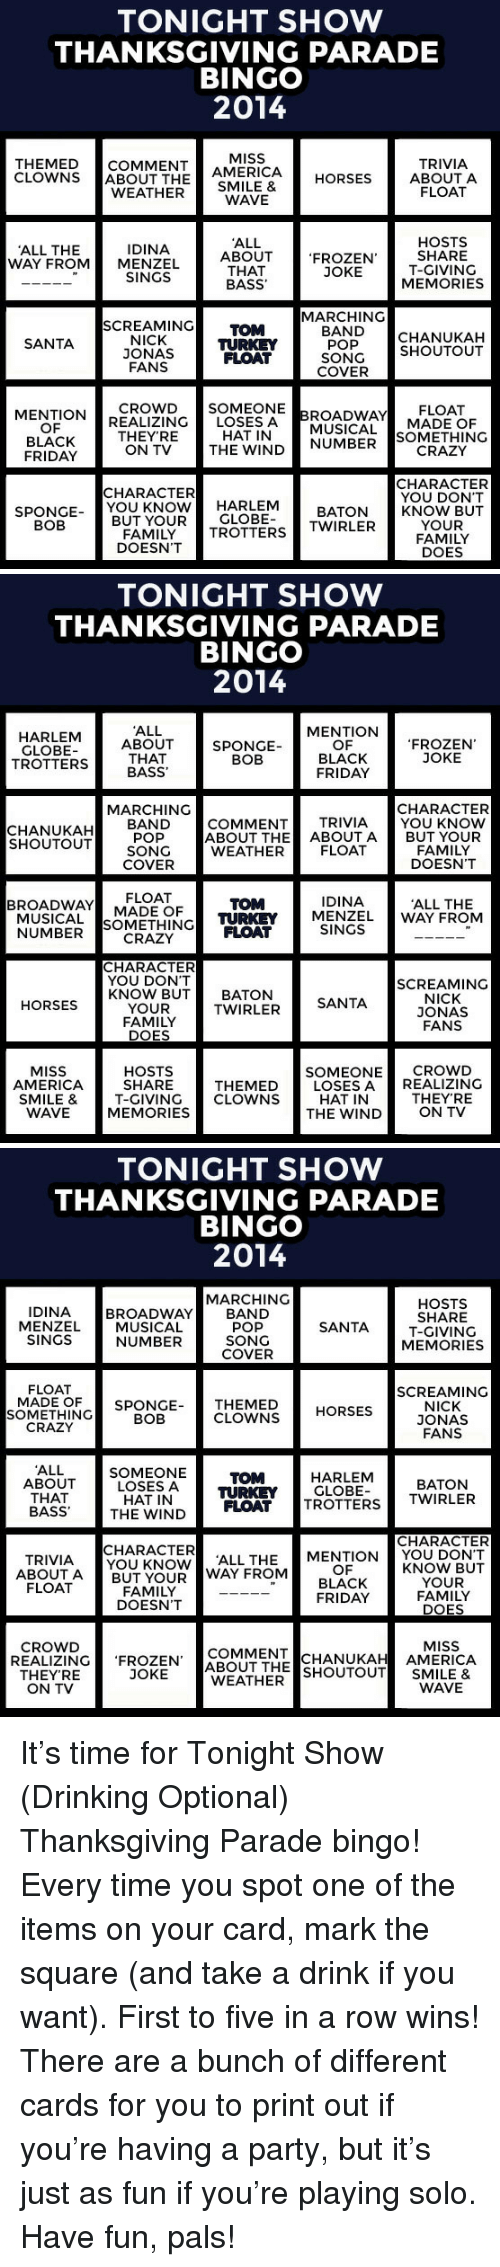 America, Black Friday, and Crazy: TONIGHT SHOW  THANKSGIVING PARADE  BINGO  2014  THEMEDCOMMENT AMERICA HORSES AB  CLOWNS ABOUT THE  MISS  TRIVIA  ABOUT A  FLOAT  WEATHER SMILE&  WAVE  ALL  ABOUT  THAT  BASS  HOSTS  SHARE  T-GIVING  MEMORIES  IDINA  ALL THE  WAY FROMMENZEL  FROZEN  JOKE  SINGS  MARCHING  SCREAMING TOM  NICK  JONAS  FANS  BANDCHANUKAH  POP  SONGSHOUTOUT  SANTA  TURKEY  FLOAT  COVER  MENTIONCROWD SOMEONE  THEY'RE  ON TV  OF  BLACK  FRIDAY  REALIZING「LOSES  HAT IN  BROADWAY!! . ELOAT  MUSICAL MADE OF  SOMETHING  CRAZY  THE WINDNUMBER  CHARACTER  YOU DON'T  KNOW BUT  YOUR  FAMILY  DOES  CHARACTER  SPONGE YOU KNOWH  HARLEM BATON  BUT YOURGLOBE  FAMILY TROTTERS TWIRLER  DOESN'T  BOB   TONIGHT SHOW  THANKSGIVING PARADE  BINGO  2014  ALL  ABOUT  THAT  MENTION  OF  BLACK  FRIDAY  GLOBE  TROTTERSBASS  SPONGE  BOB  FROZEN'  JOKE  MARCHING  CHARACTER  CHANUKAH BAND  SHOUTOUT  POP  SONG  COVER  COMMENT TRIVIA YOU KNOW  ABOUT THE ABOUTA BUT YOUR  WEATHER FLOAT  FAMILY  DOESN'T  BROADWAY ADE OF  FLOAT  MUSICAL SOMETHING FLOAT  CRAZY  IDINA  TOM  TURKEY MENZEL  ALL THE  WAY FROM  NUMBER  SINGS  CHARACTER  YOU DON'T  SCREAMING  KNOW BUT BATON  NICK  ONA  FANS  HORSES  TWIRLER  SANTA  YOUR  FAMILY  DOES  HOSTS  SHARE  SMILE & T-GIVING CLOWNS  MEMORIES  SOMEONECROwD  LOSES AREALIZING  MISS  AMERICA  THEMED  HAT IN  THEYRE  WAVE   TONIGHT SHOW  THANKSGIVING PARADE  BINGO  2014  MARCHING  IDINA  MENZEL  SINGS  HOSTS  SHARE  T-GIVINO  MEMORIES  BROADWAY BAND  MUSICAL  NUMBER  POP  SONG  COVER  FLOAT  SCREAMING  SOMETHING  CRAZY  MADE OFSPONGE-  THEMED HORSES  CLOWNS  NICK  ONA  FANS  BOB  ALL  HARLEM  GLOBE  TOM  ABOUTSOMEONE  LOSES A TURKEY  BATON  THAT  BASS  THE WIND FLOAT TROTTERSTWIRLER  CHARACTER  CHARACTER  TRIVIA  ABOUT A  FLOAT  YOU KNOWL THE MENTION YOU DON'T  BUT YOUR WAY FROM  OF  BLACK  FRIDAY  KNOW BUT  YOUR  FAMILY  DOES  FAMILY  DOESN'T  CROWD  MISS  COMMENTCHANUKAH AMERICA  REALIZING FROZEN ABOUT THE SHOUTOUT SMILE &  THEYRE  JOKE  WEATHER  ON TV  WAVE <